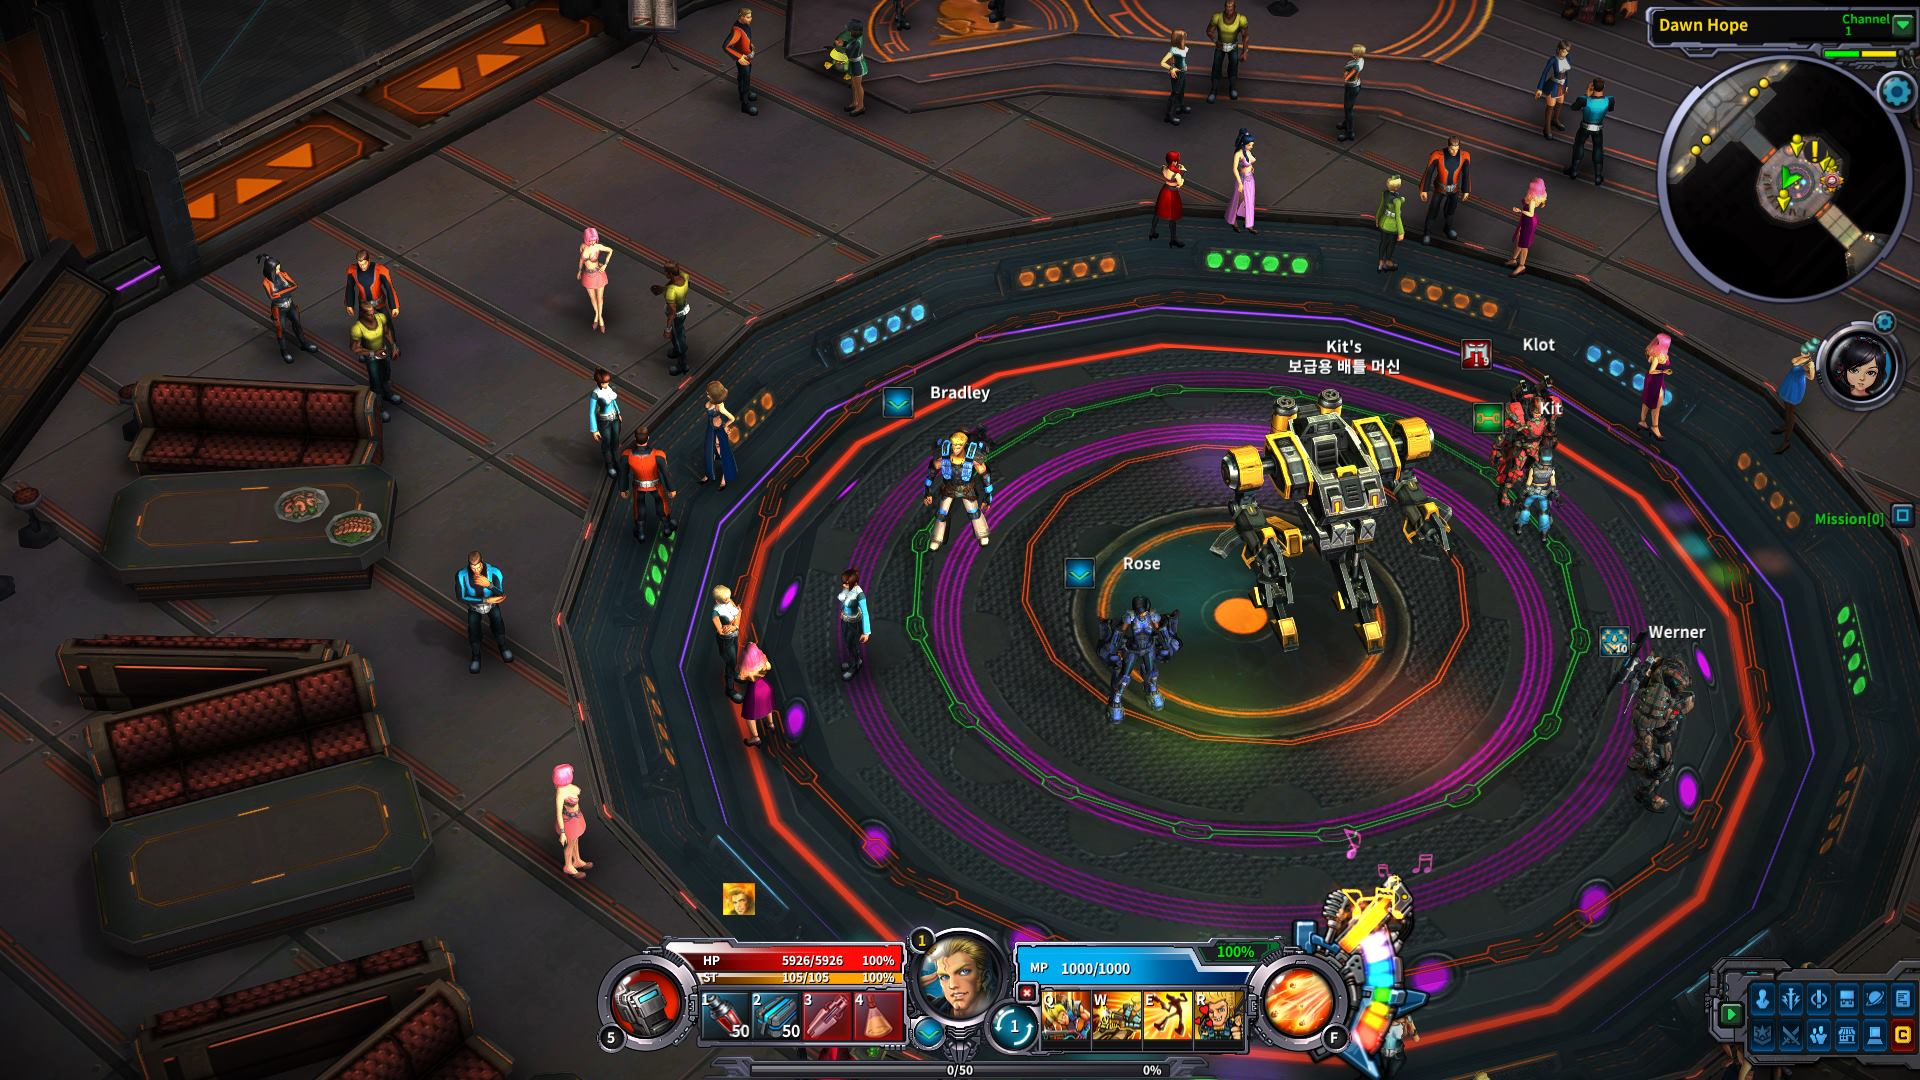 What's On Steam - Wild Buster: Heroes of Titan - MMO-ARPG